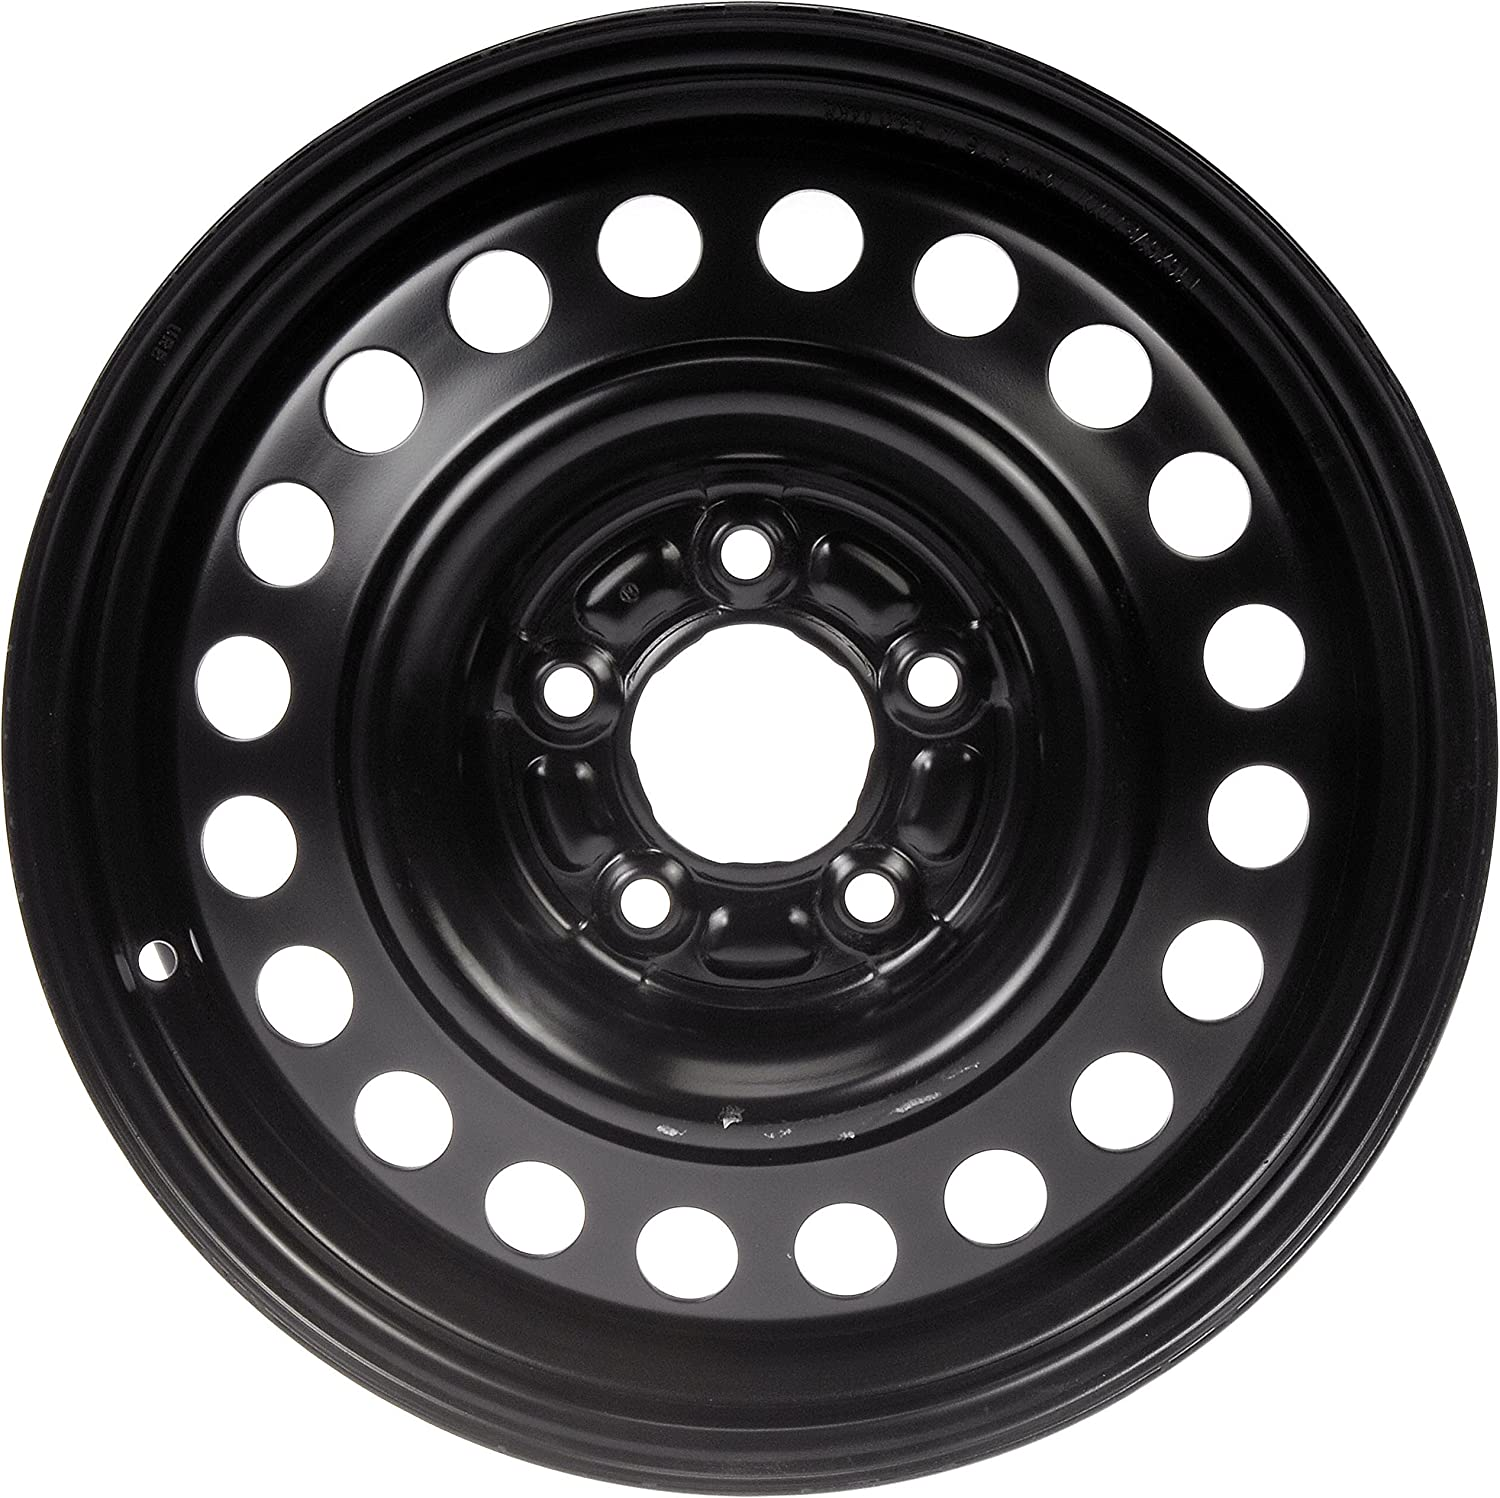 Dorman 939-138 Steel Wheel sold out Translated 16x6.5in. Mode for Select Chevrolet